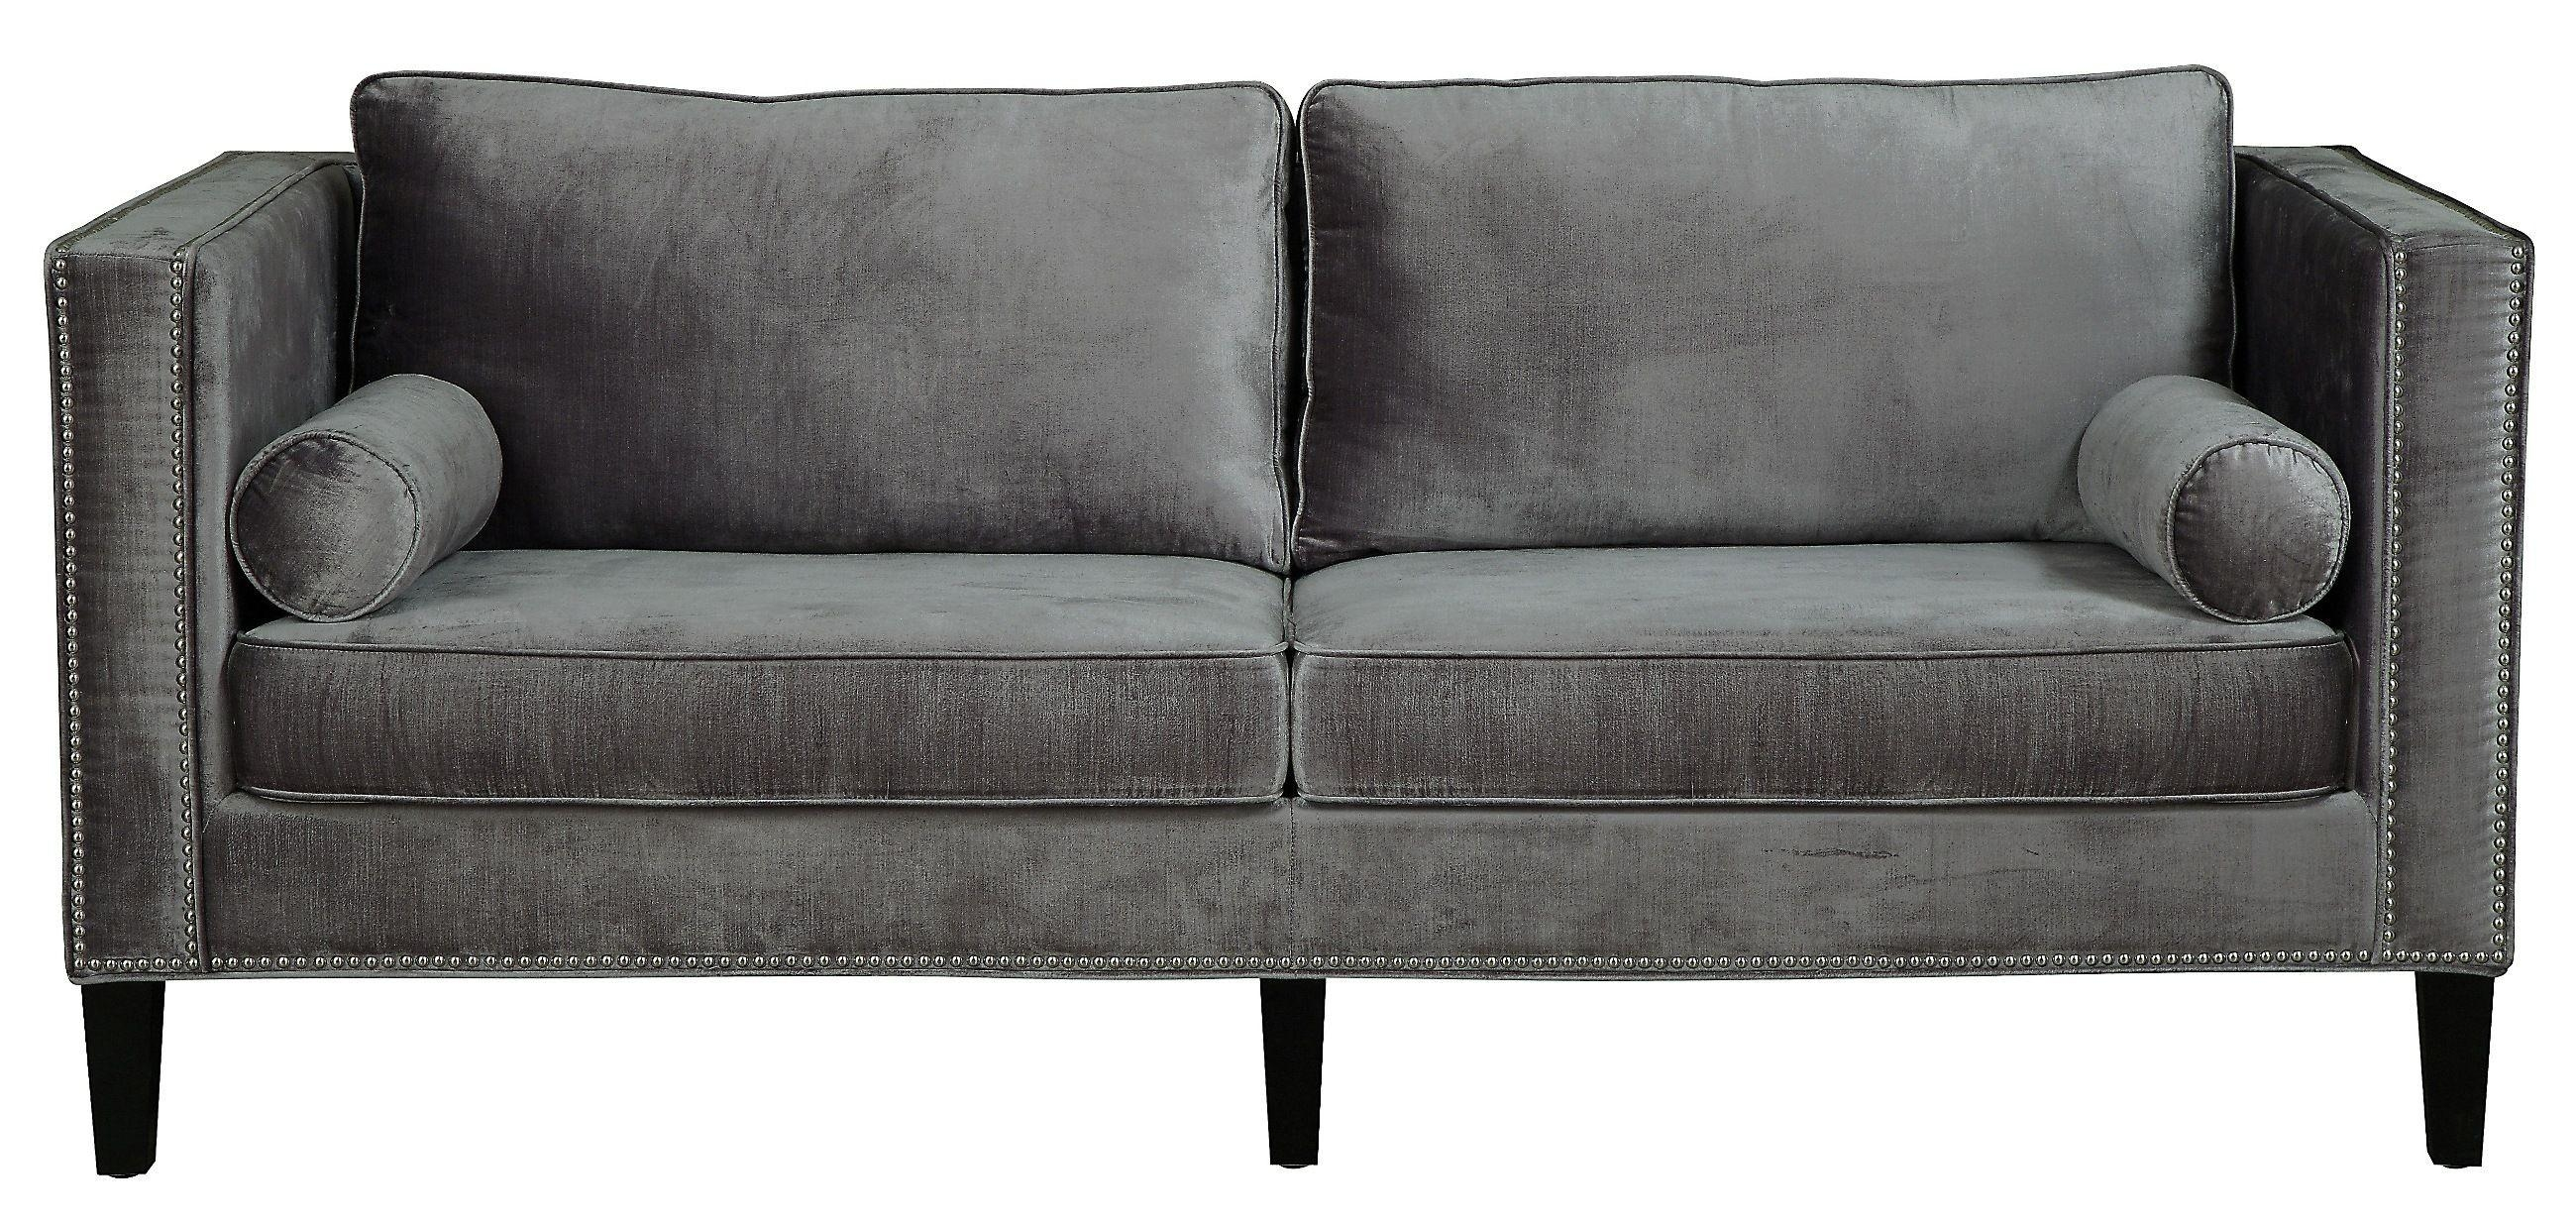 velvet grey tufted sofa polaris mini contemporary leather sectional 23 best cheap sofas ideas